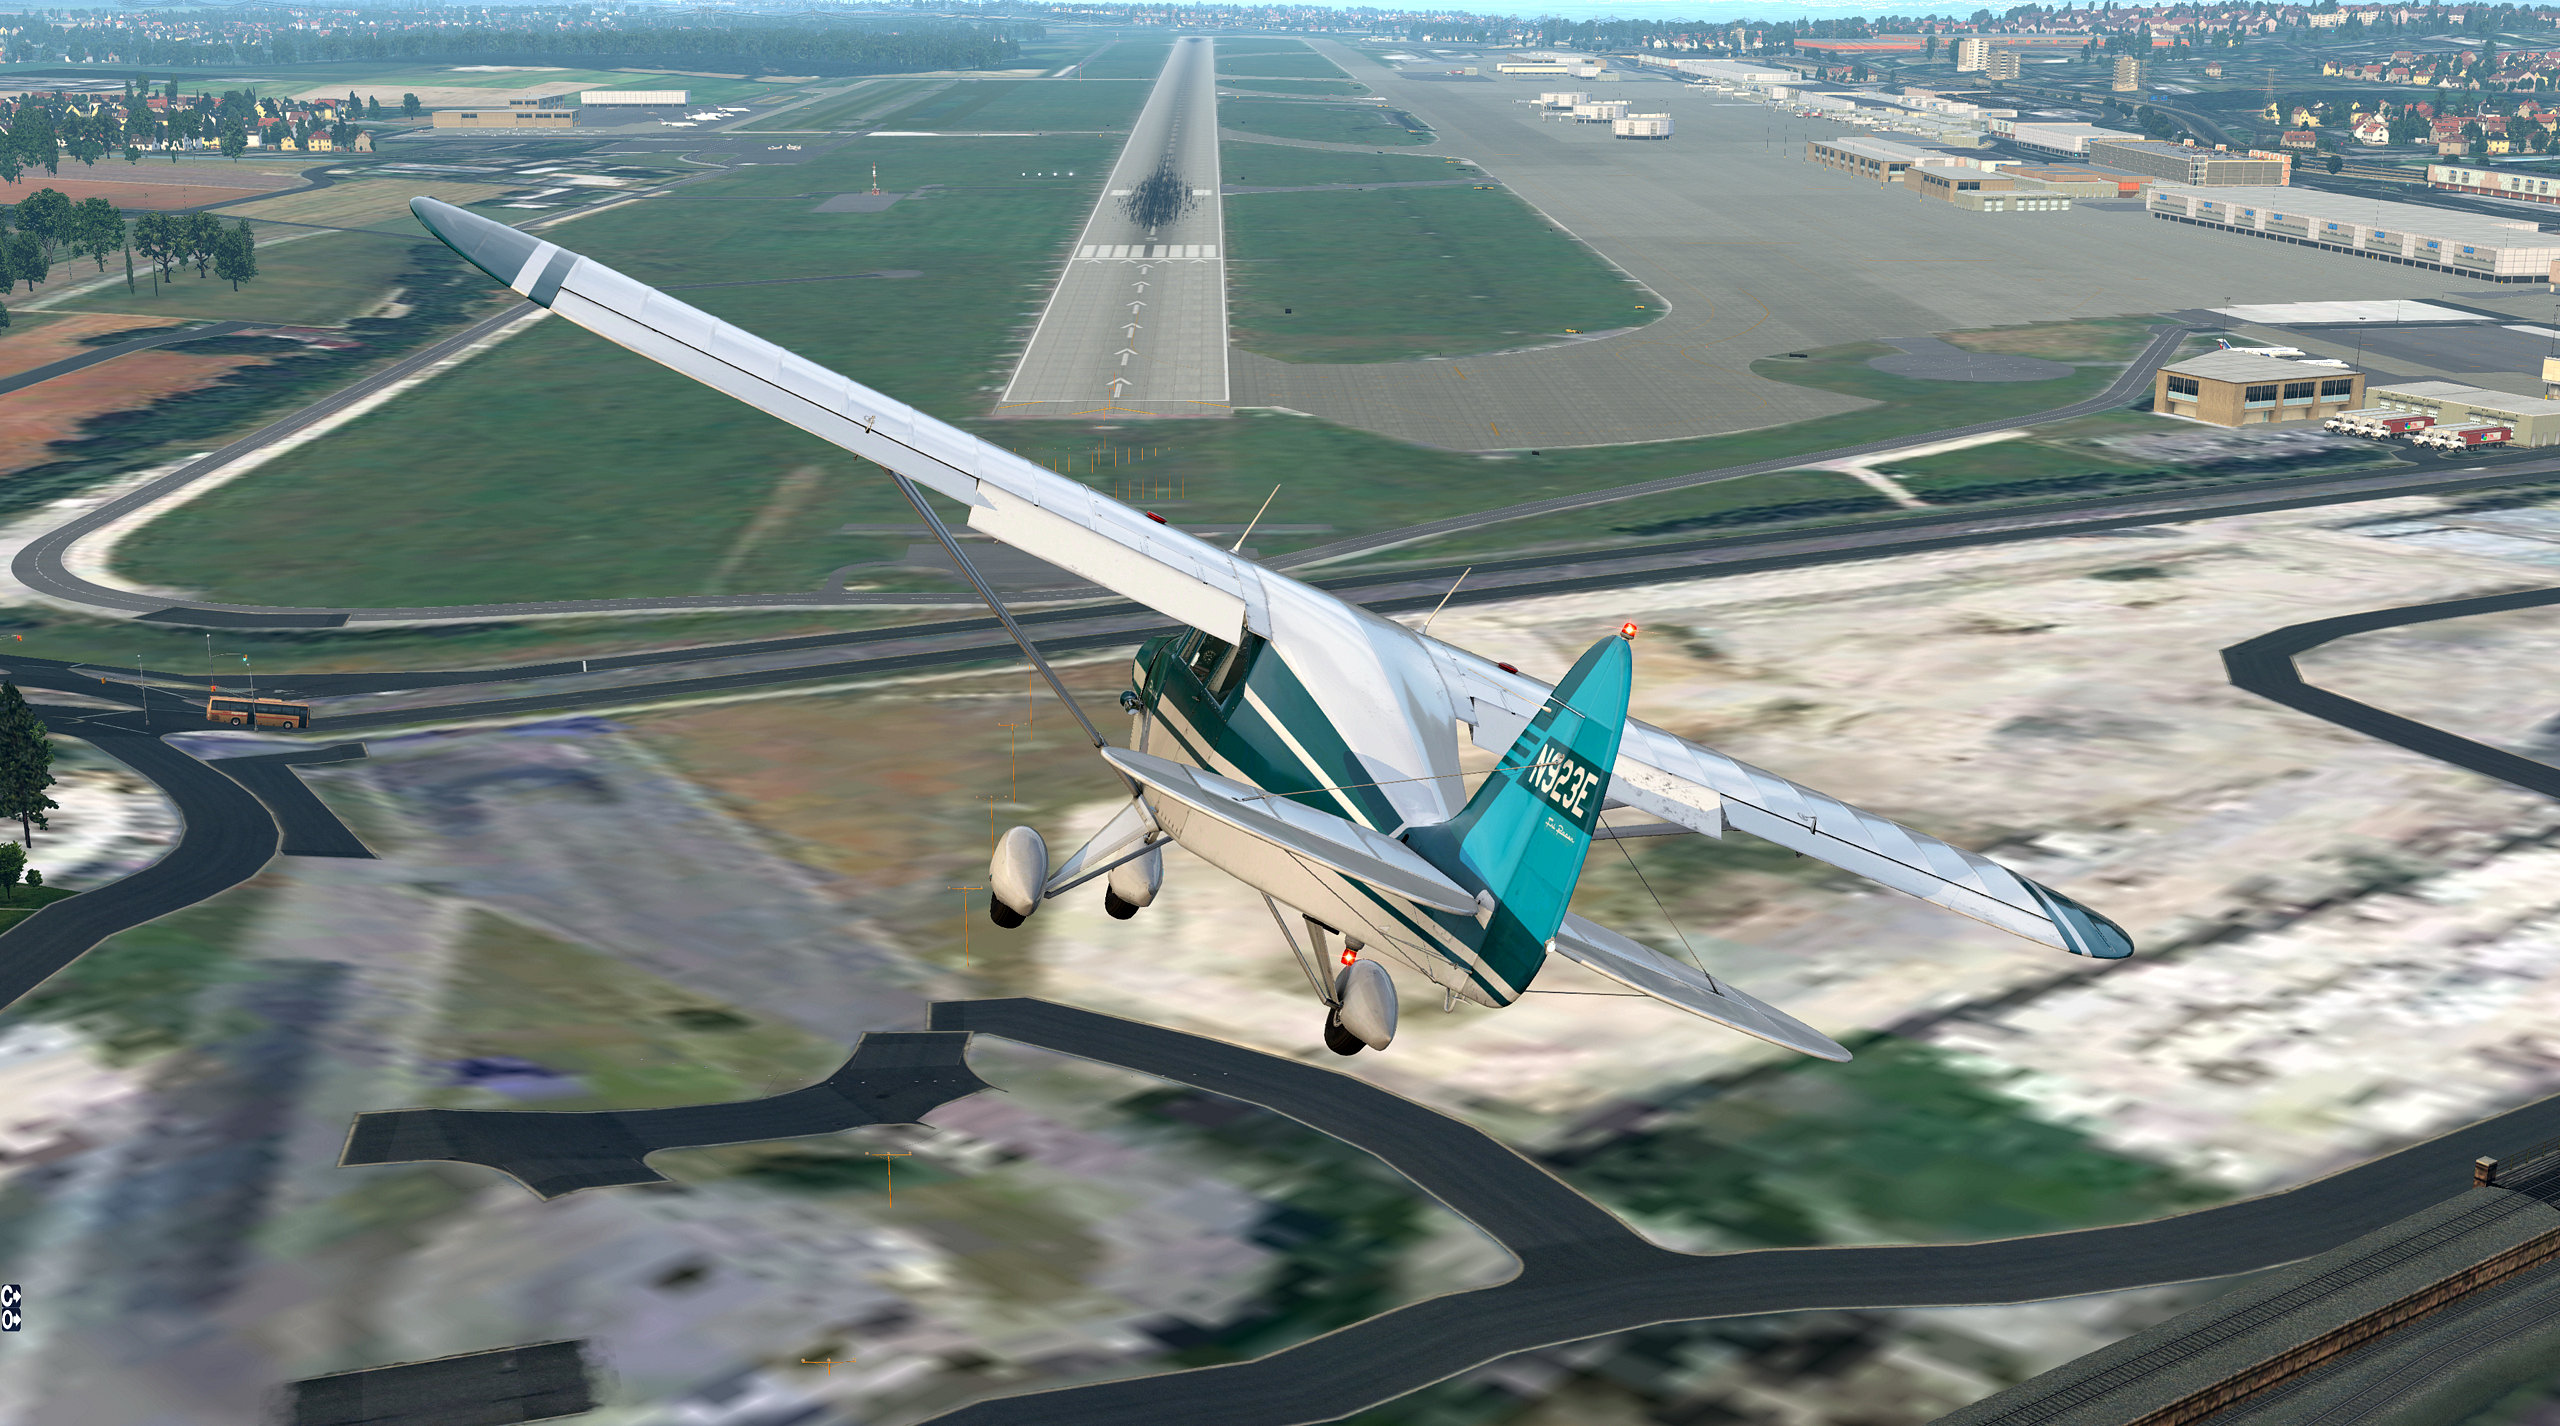 News! - Aircraft Released! : PA22 Tri-Pacer By Carenado